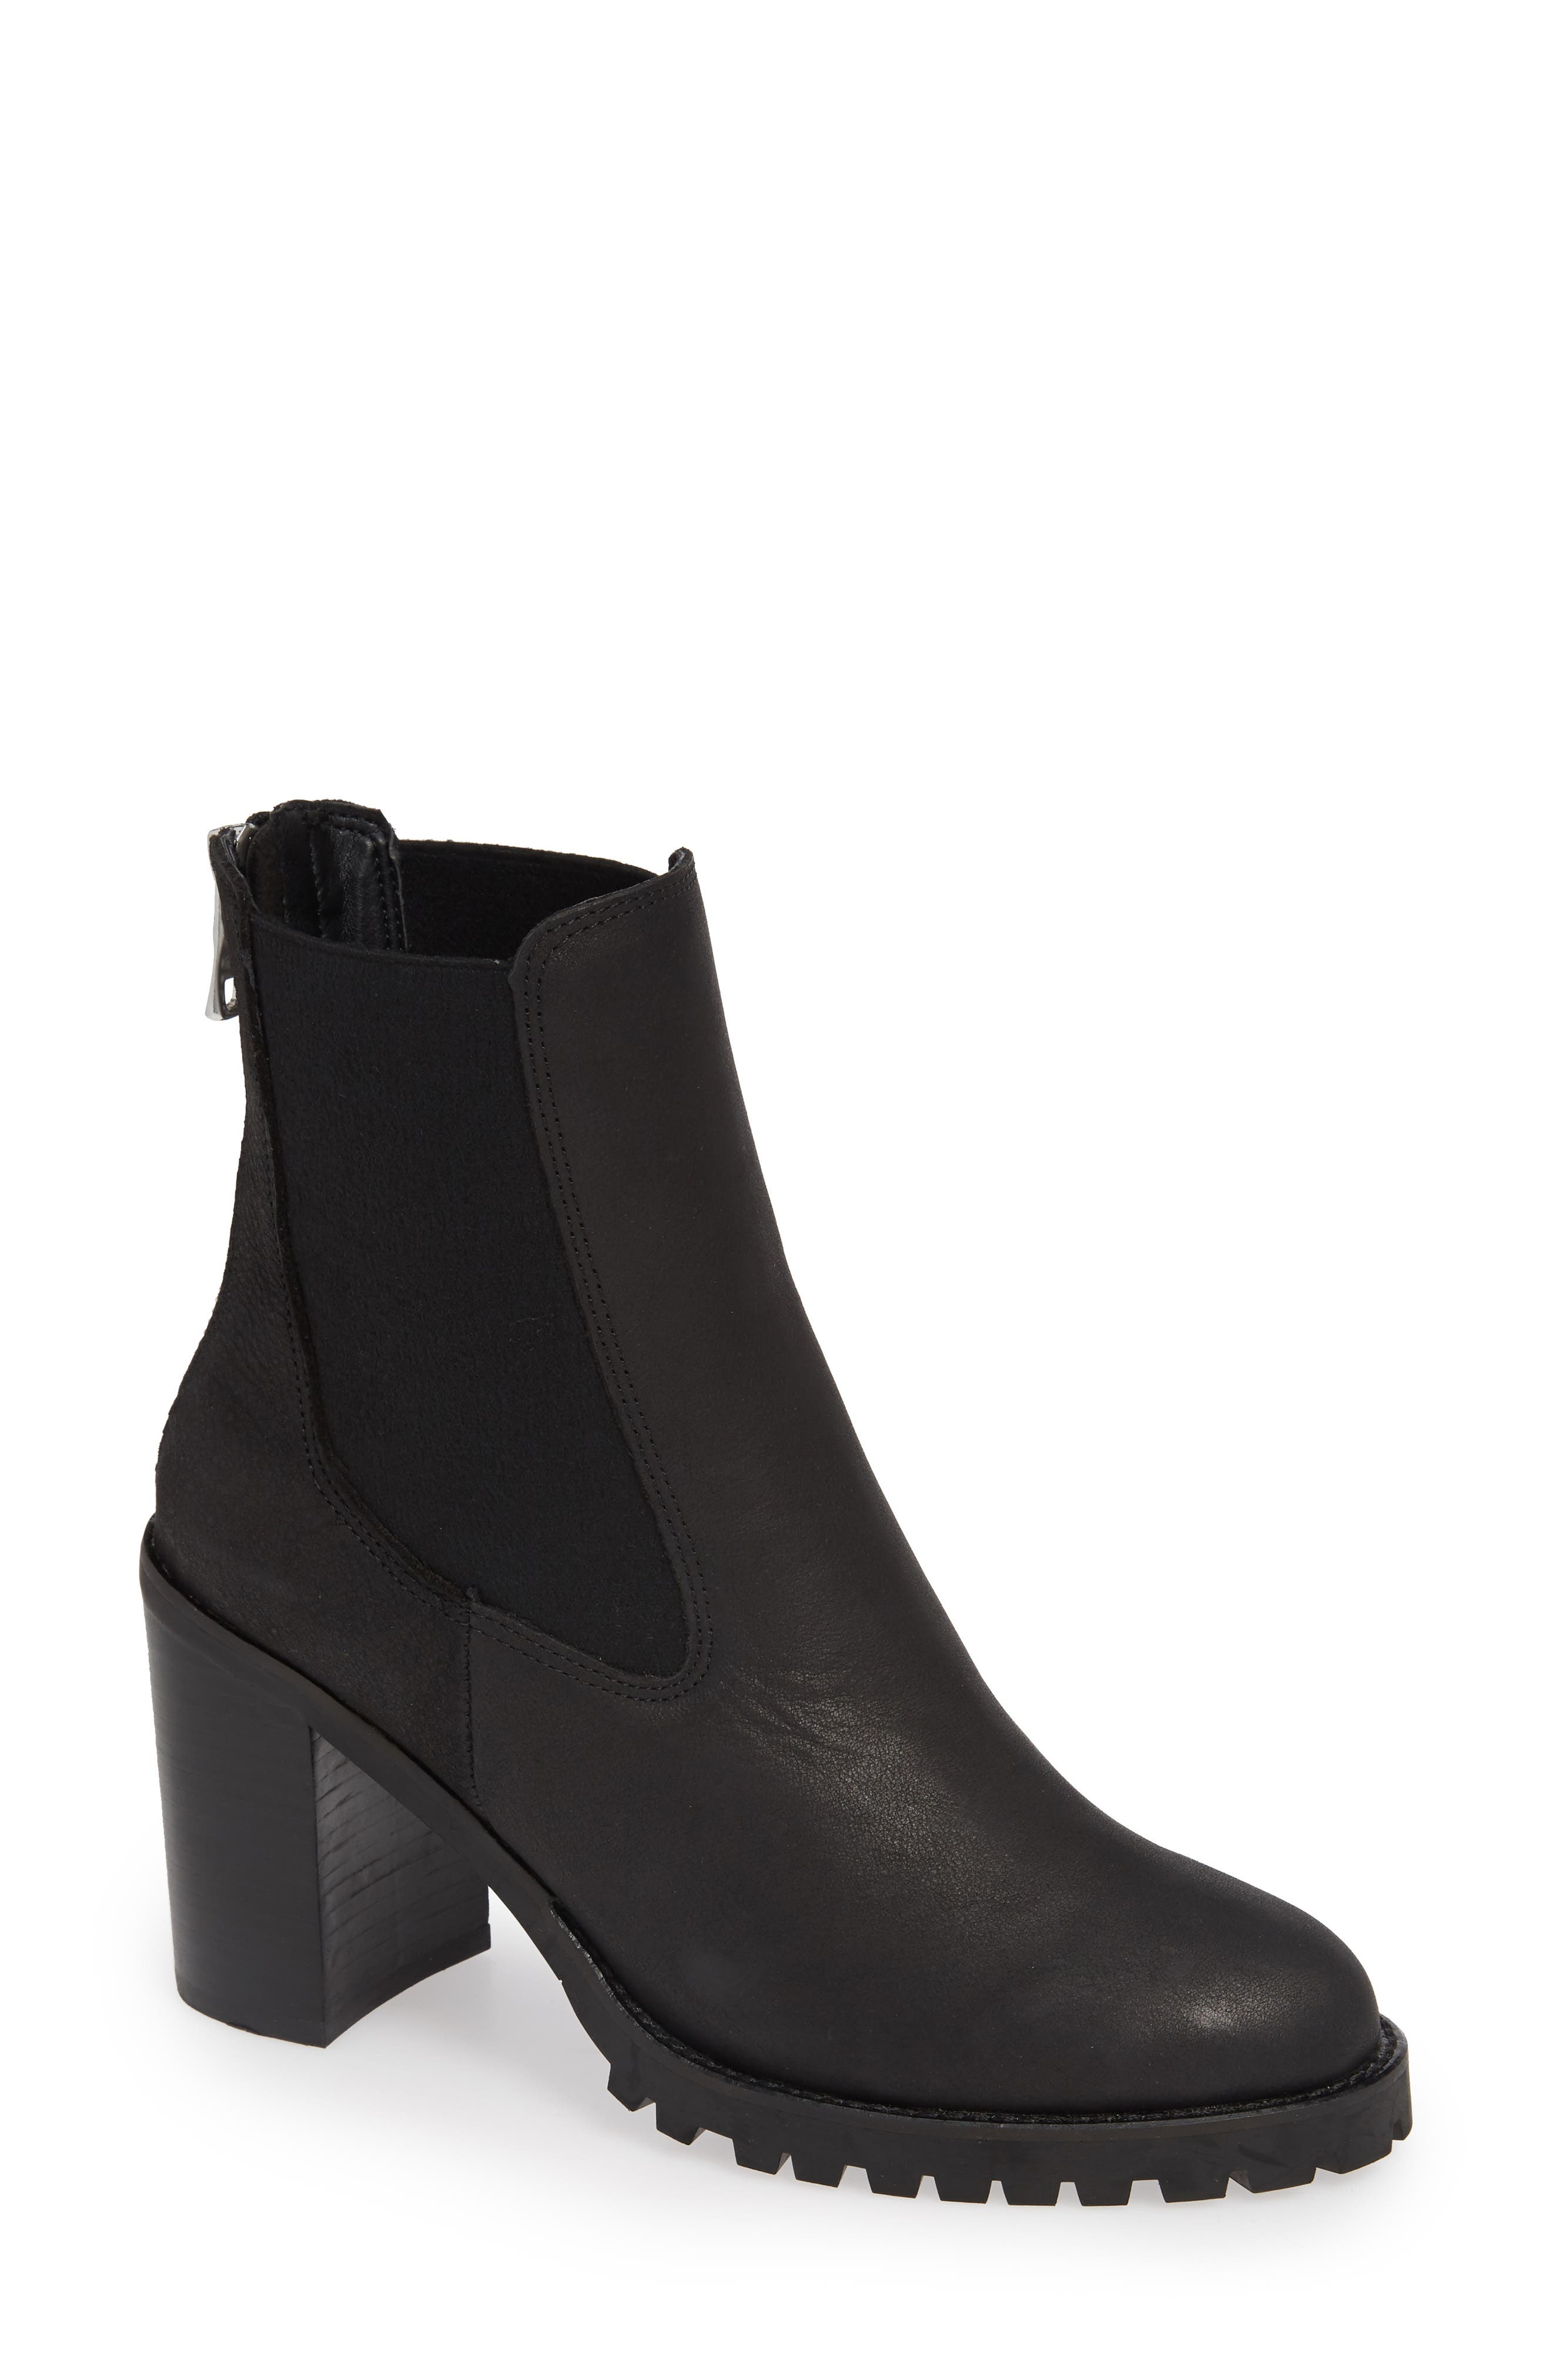 Chinese Laundry Jersey Zip Chelsea Bootie- Black